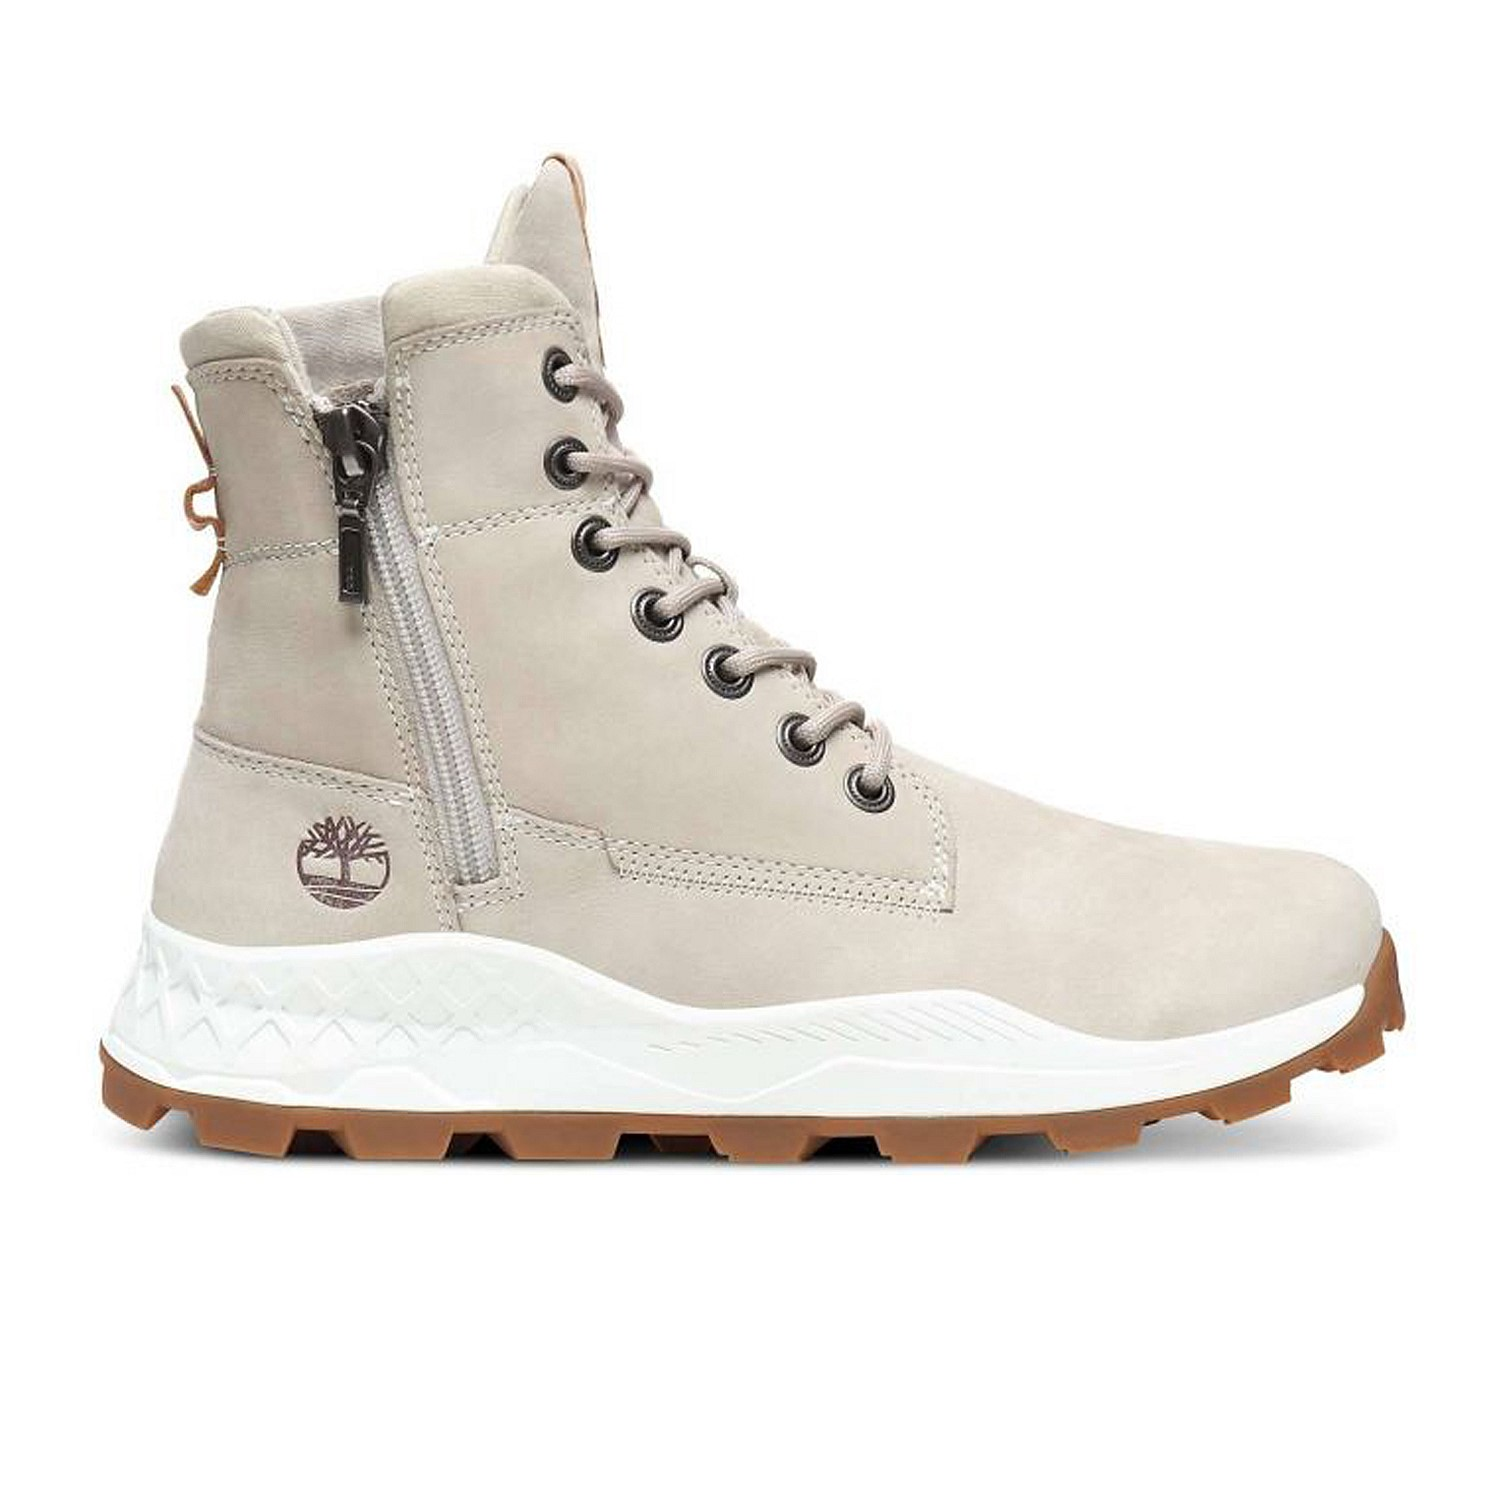 107a3d0237 Gender: Mens; Product Type: Casual Shoes; Product Type: Hi Tops